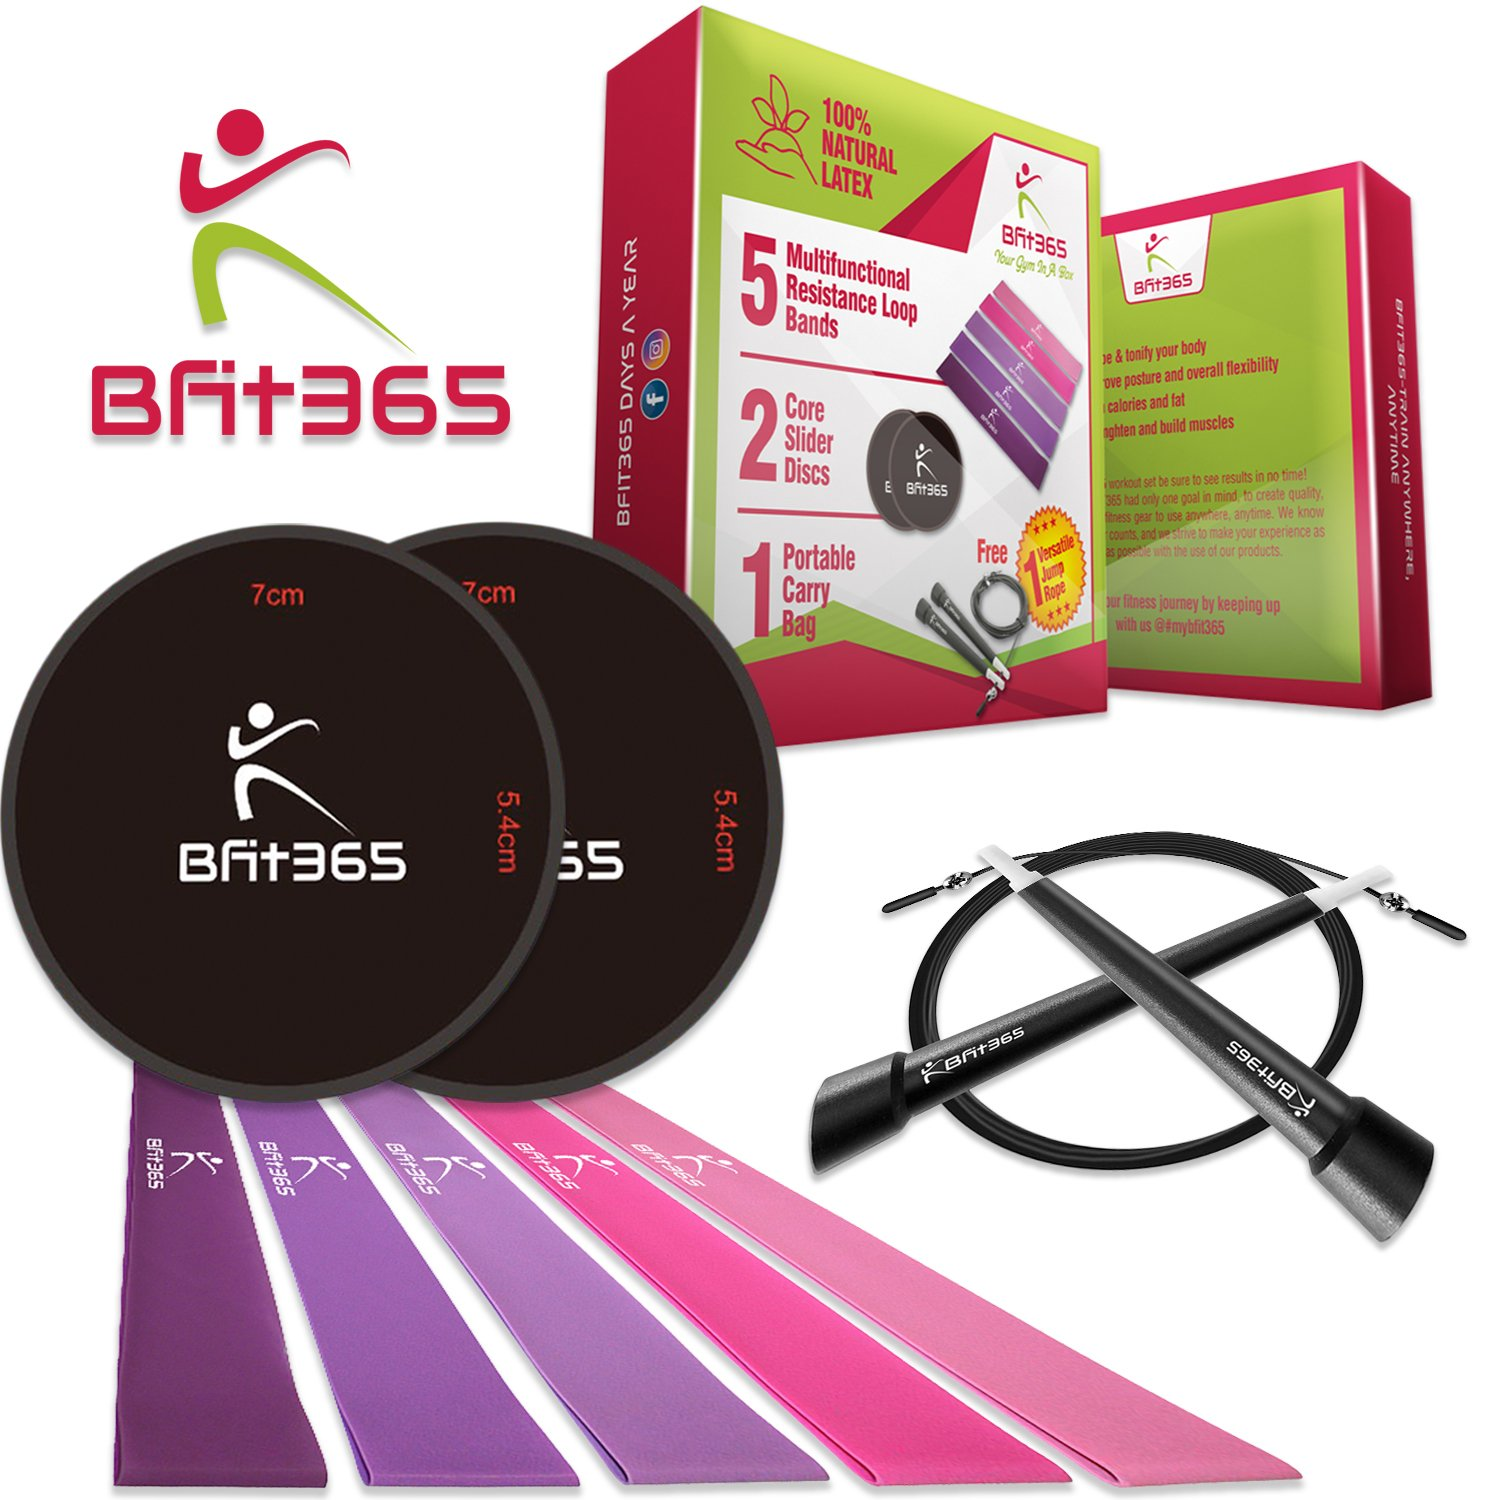 Bfit365 5 Quality Resistance Bands with Dual core Sliders for high/Low Intensity Training | Free Jump Rope Included for Cardio |Total Body Workout at Home, Gym &/or The go.